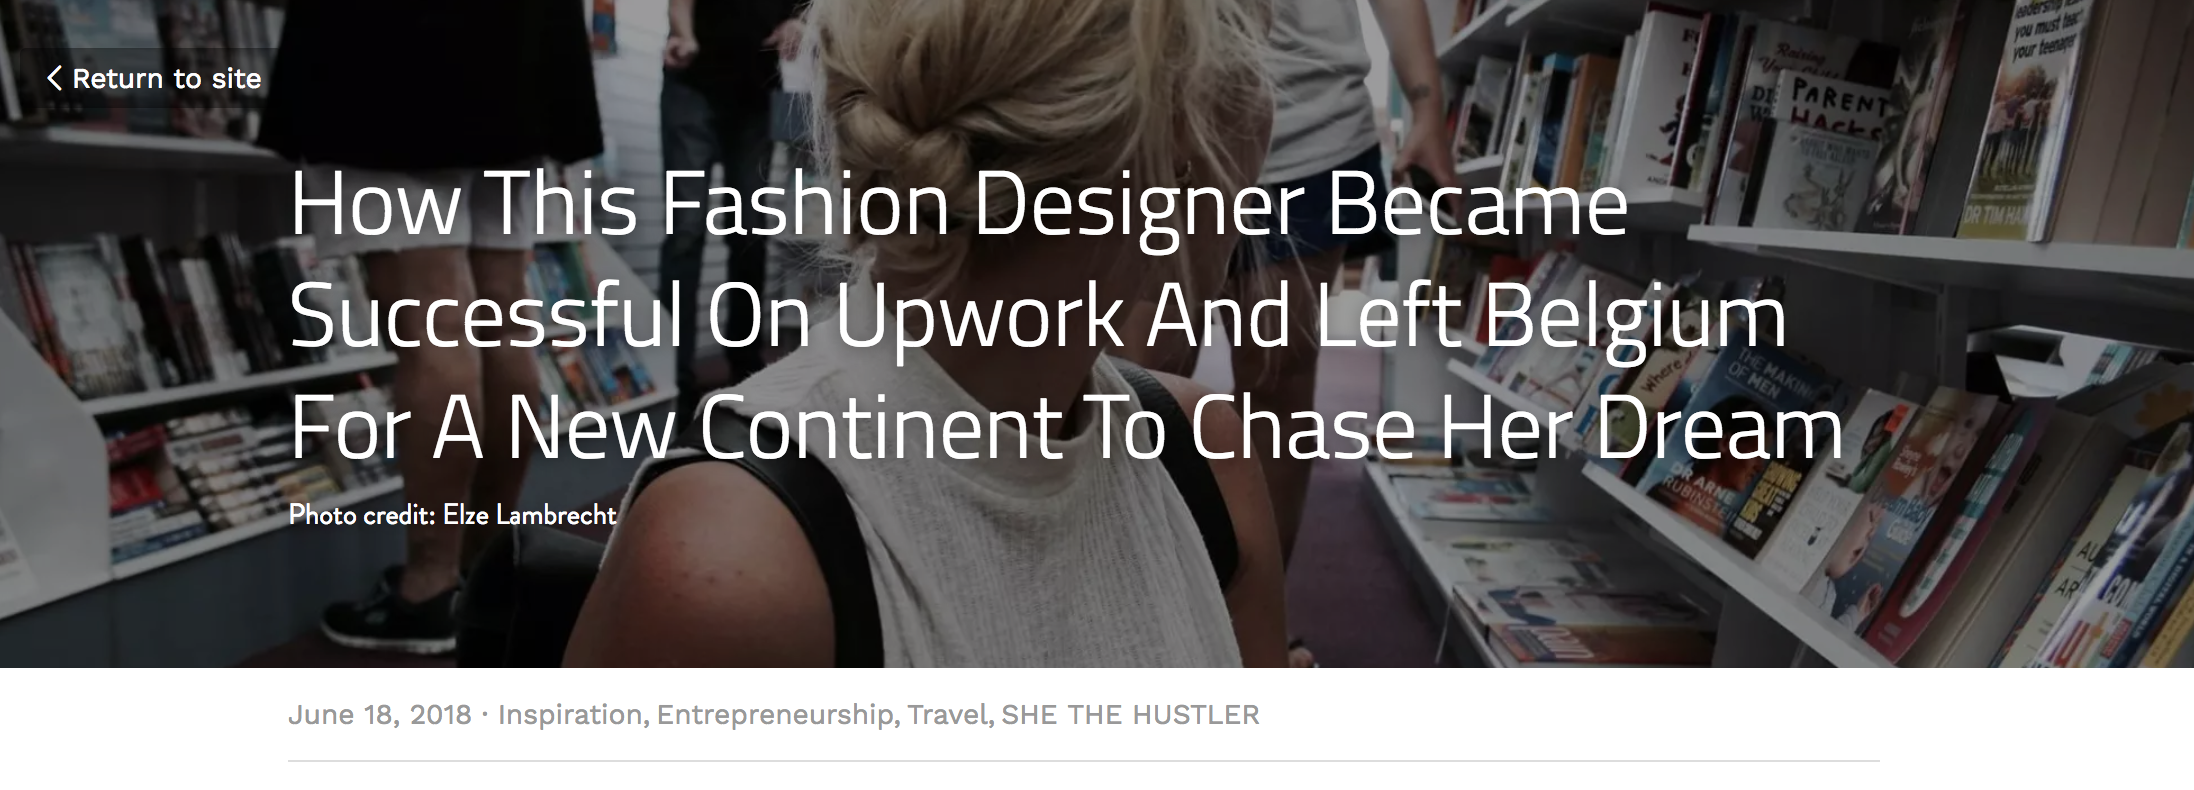 Interview for `ThE HUSTLE IS FEMALE` - https://www.thehustleisfemale.com/blog/how-this-fashion-designer-became-successful-on-upwork-and-left-belgium-for-a